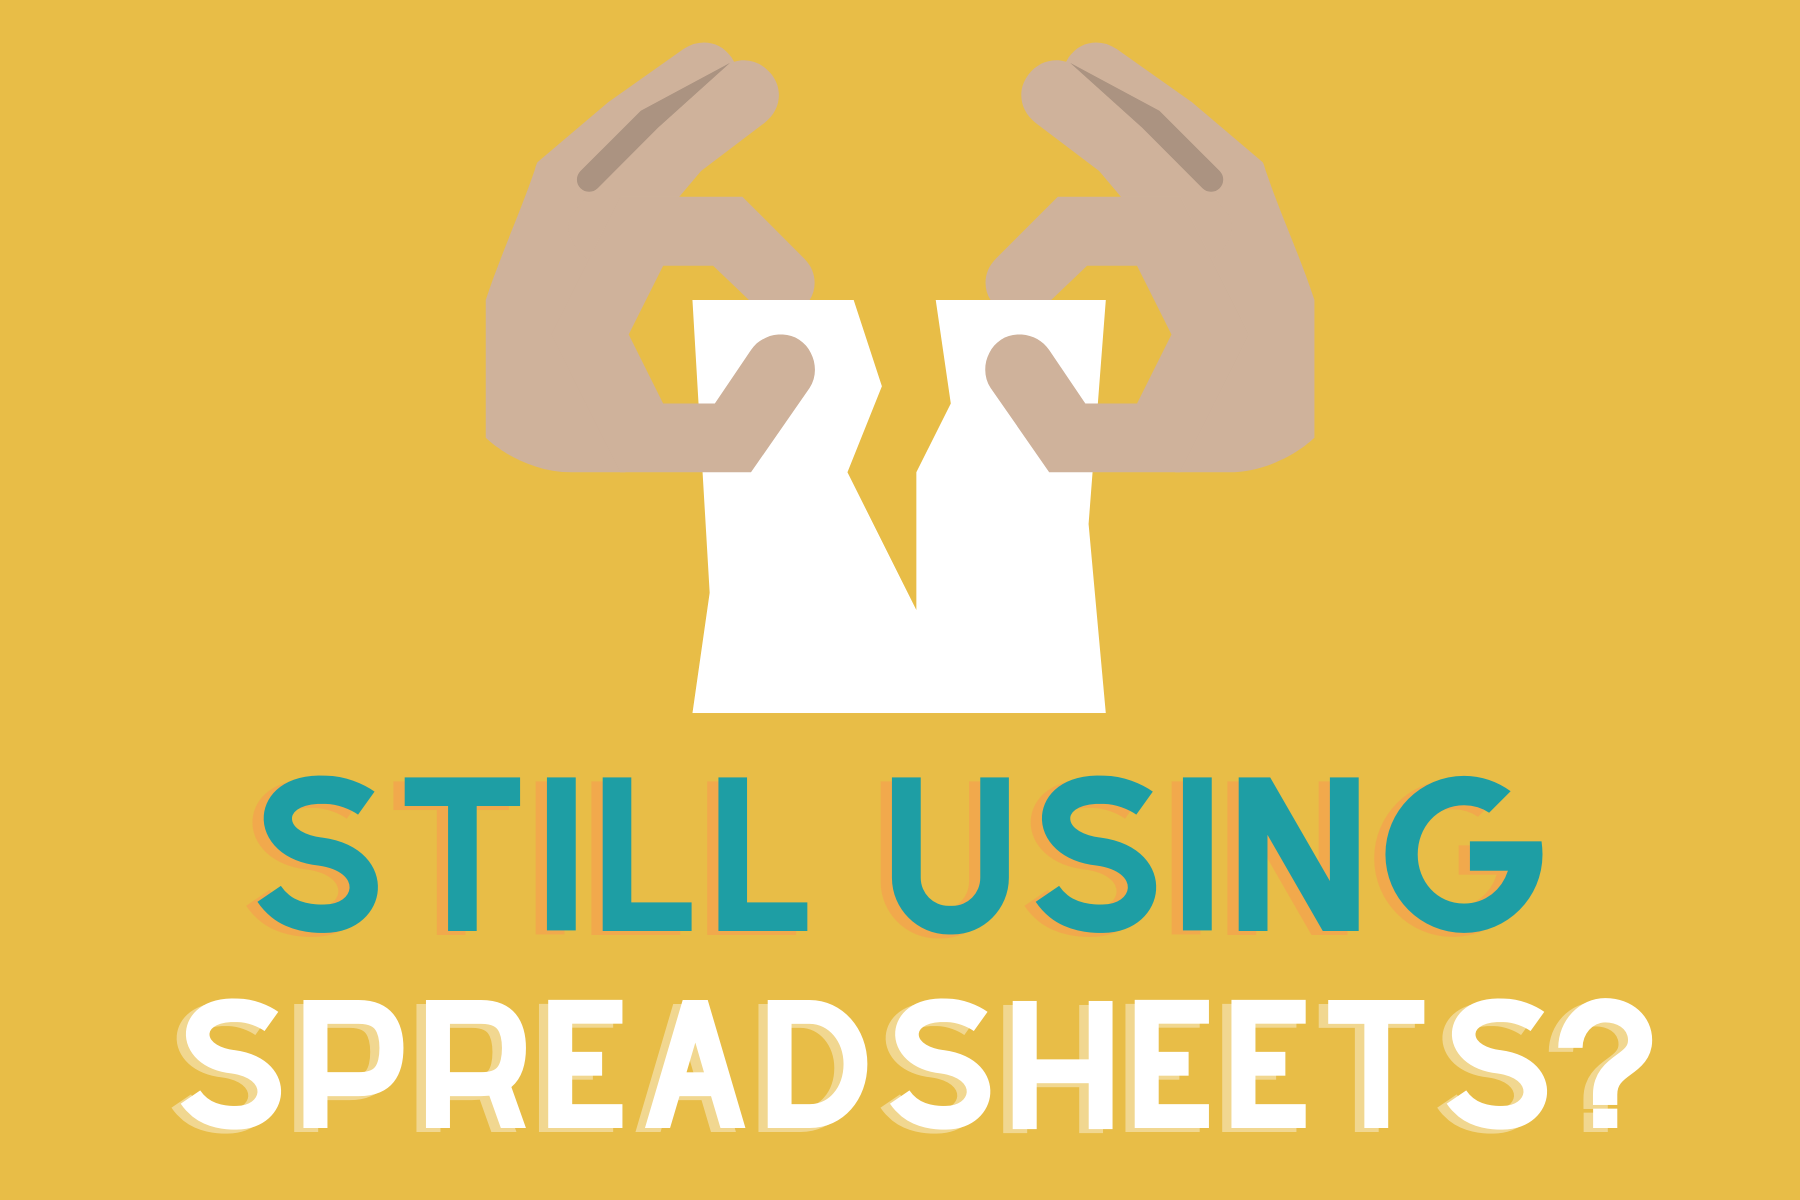 Still using spreadsheets? Transform your admissions efforts in 2021